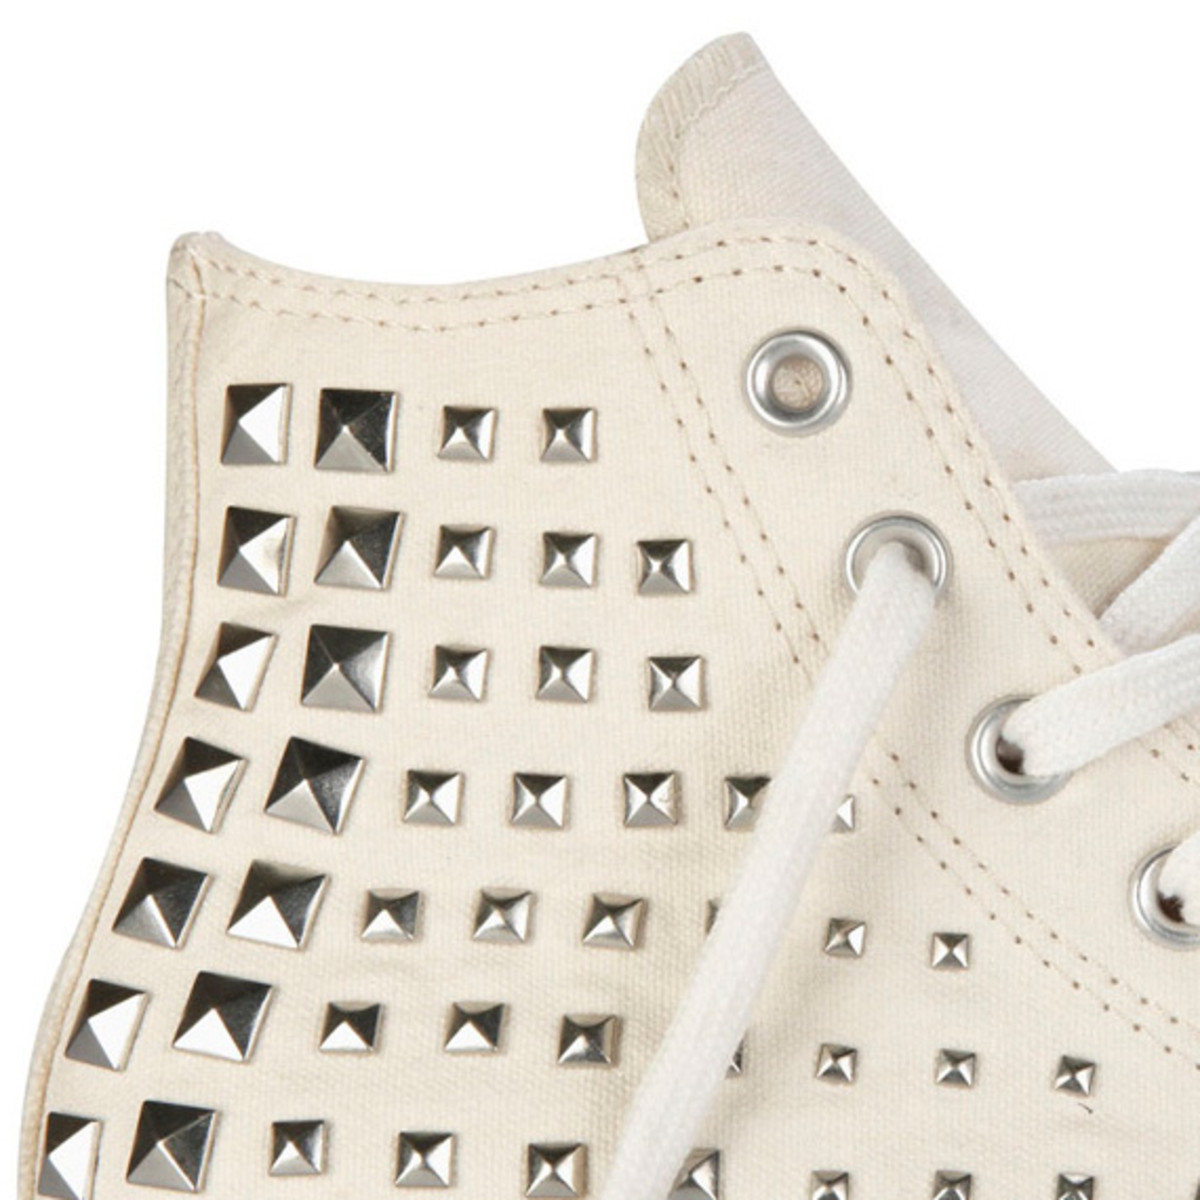 converse-chuck-taylor-all-star-collar-studs-fall-2013-collection-11